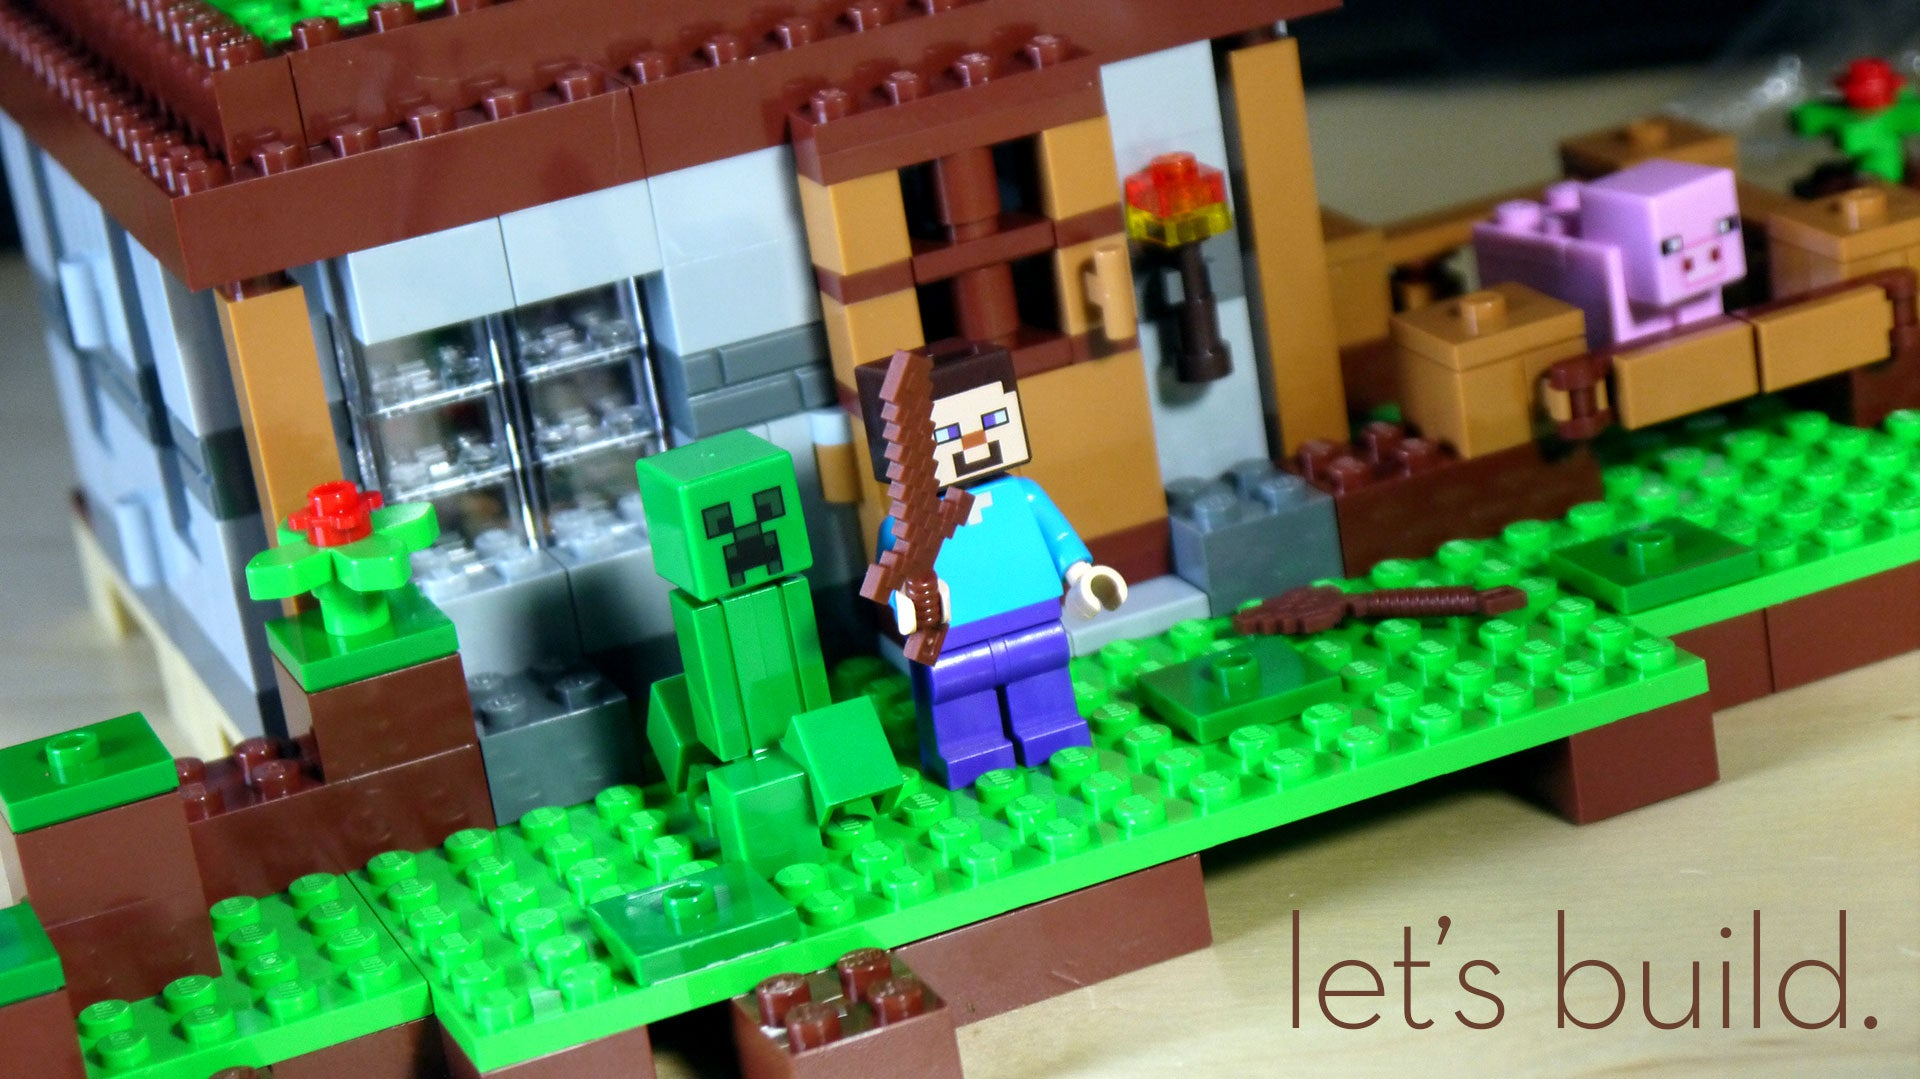 Building LEGO Minecraft Is Much More Fun At Minifig-Scale